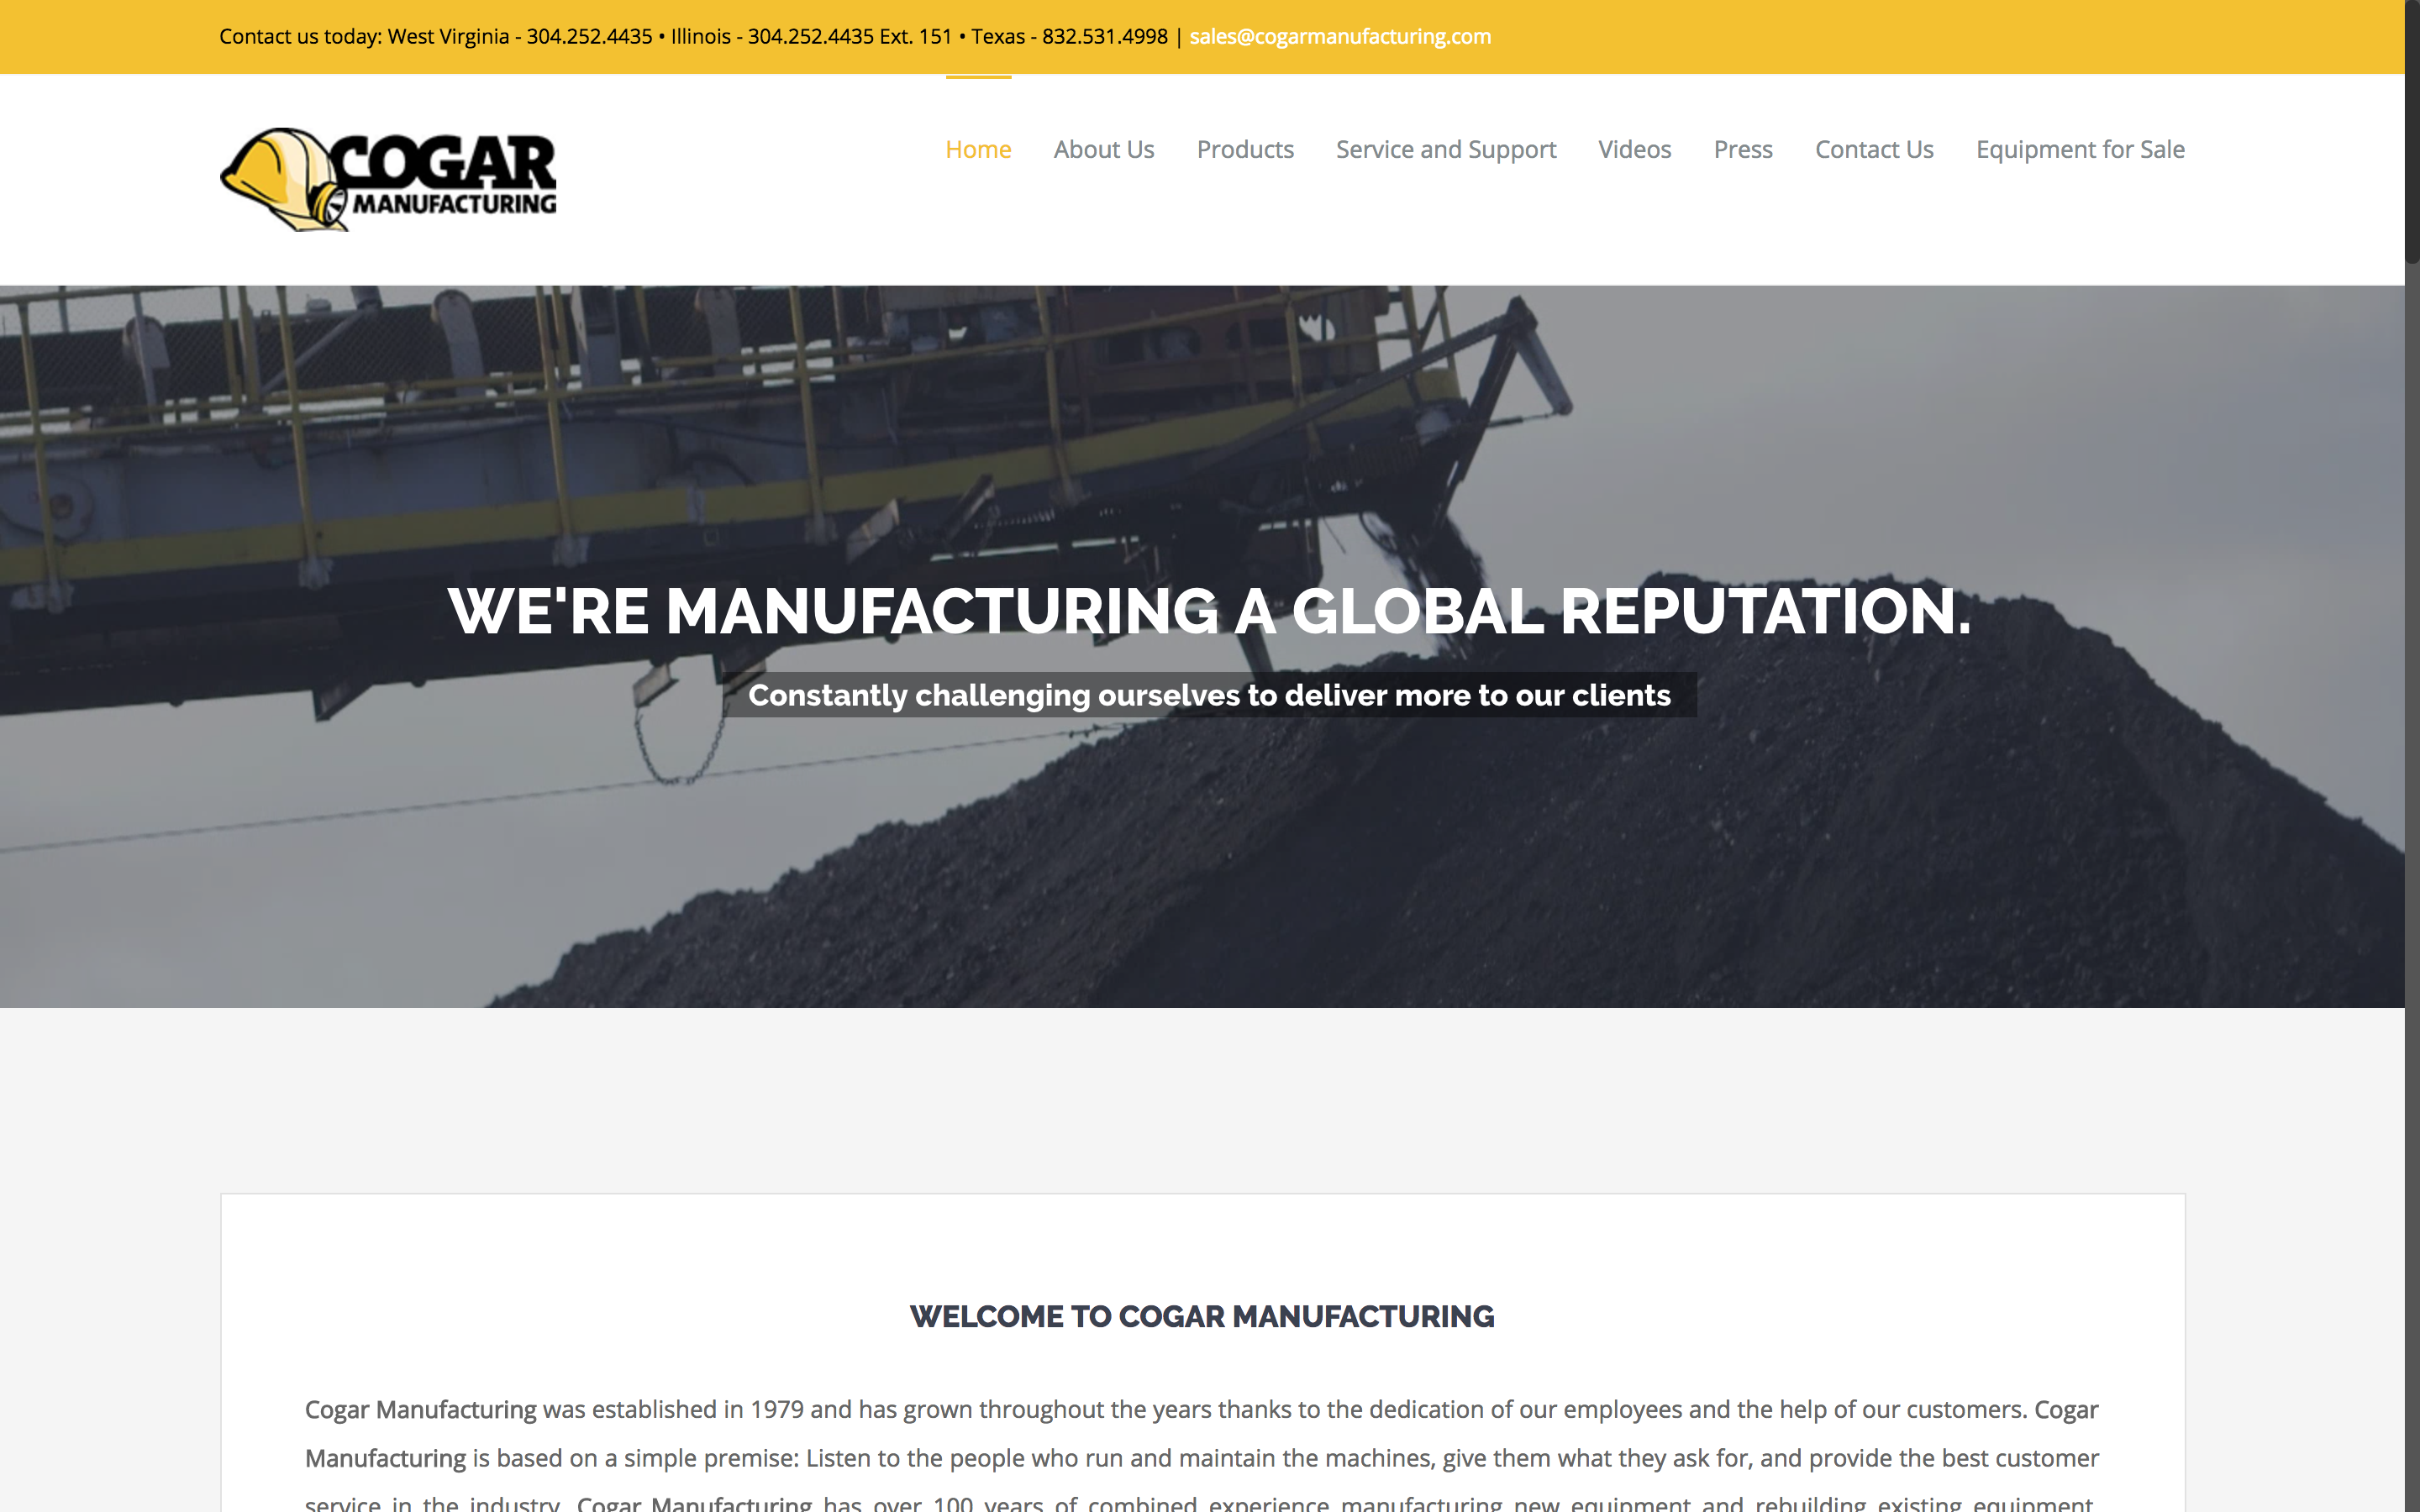 Cogar Manufacturing Home Page West Virginia Web Design by Cucumber & Company Best websites in WV